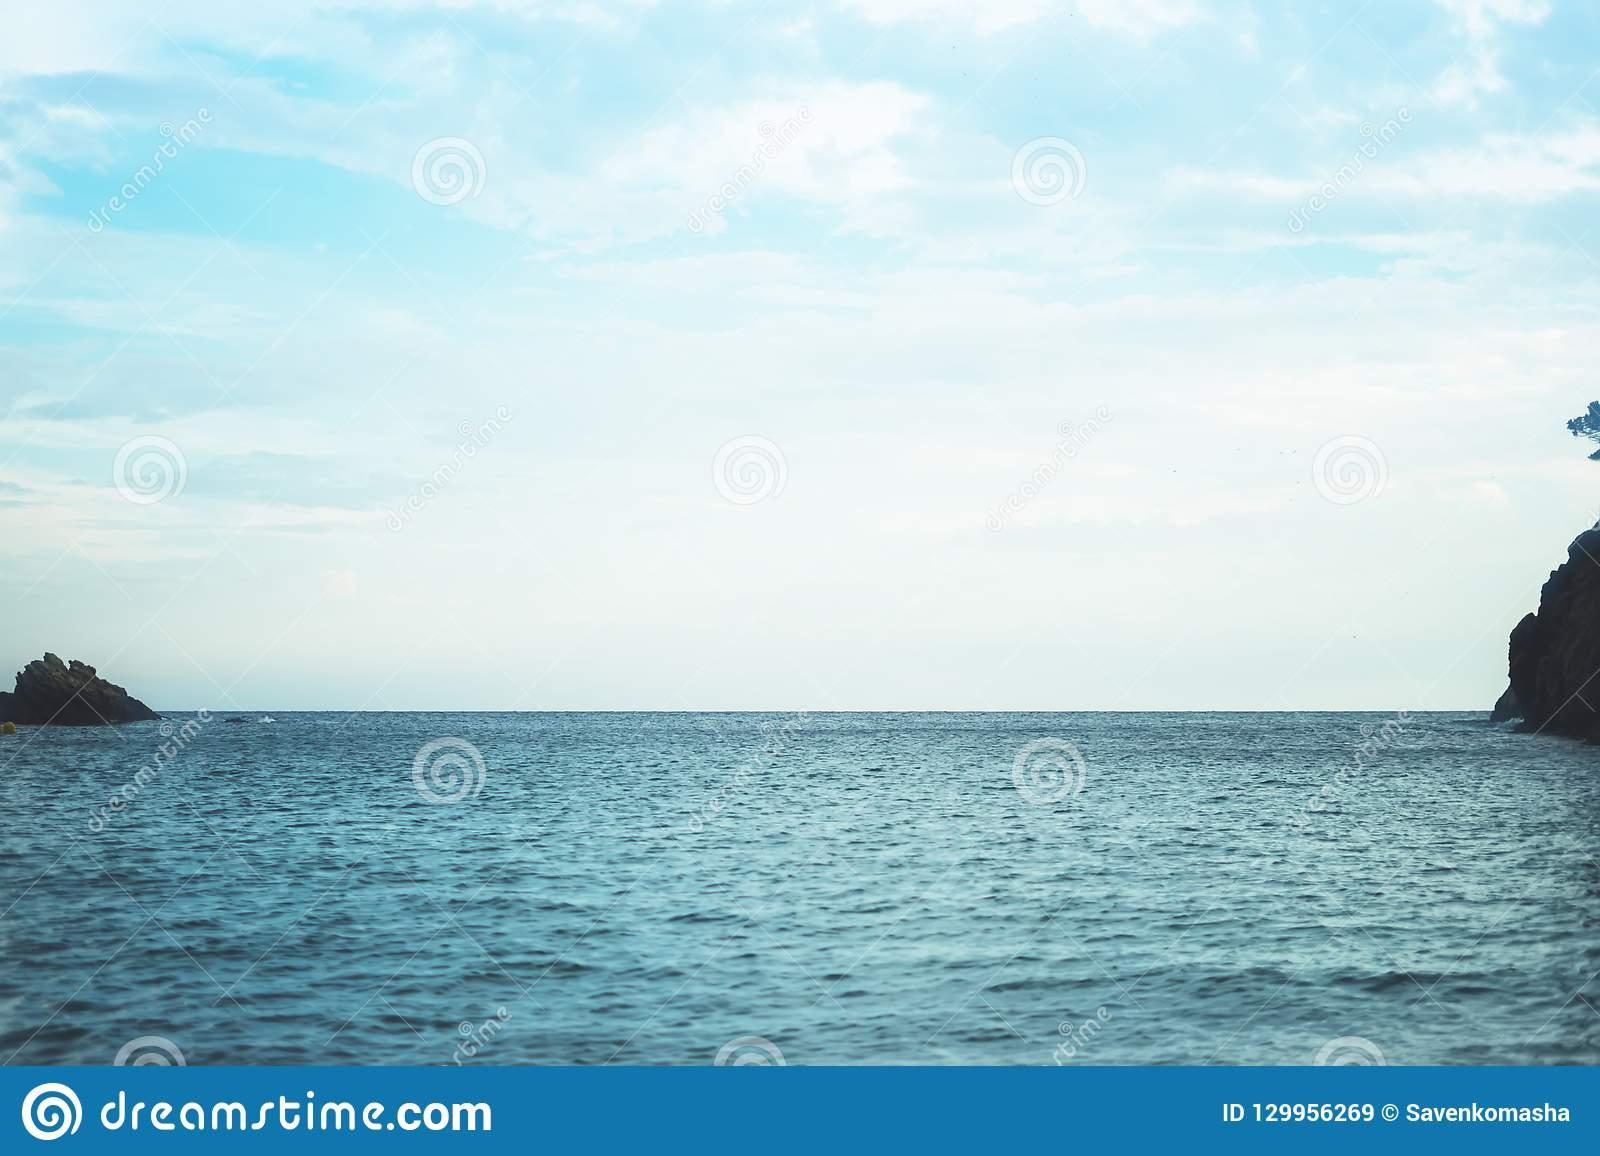 Waves of blue quiet ocean coast landscape. Background sea scape and sand beach coastline. Panorama horizon perspective view nature